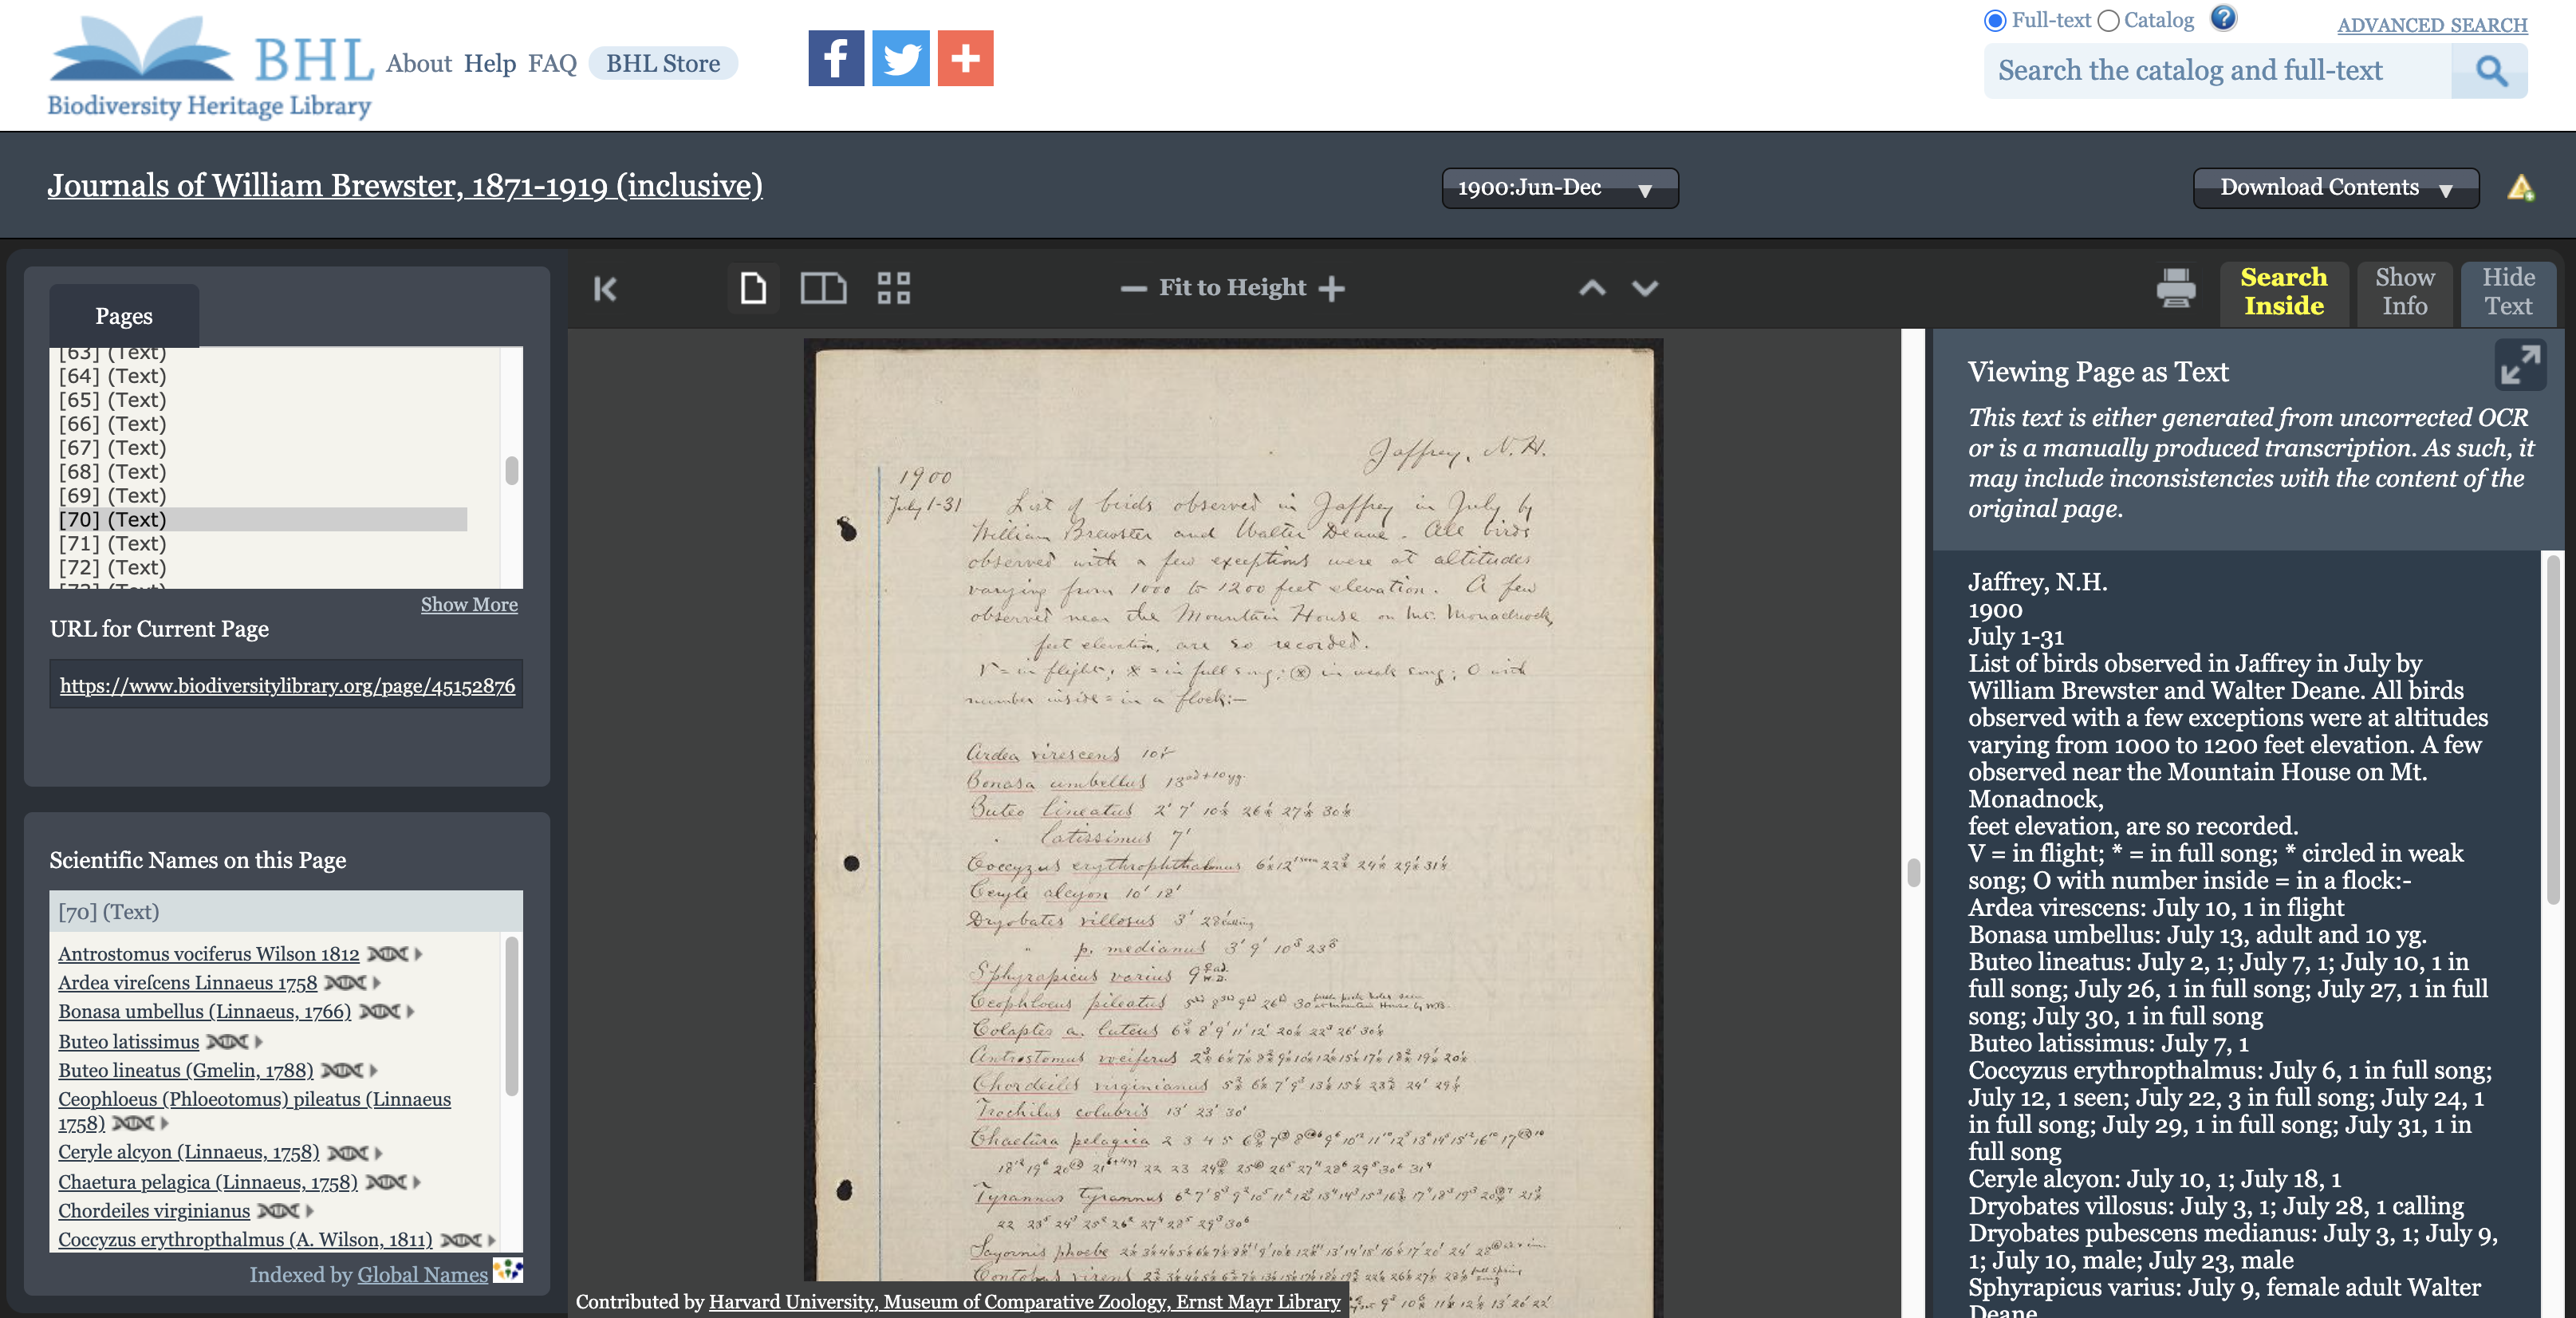 Screenshot of the BHL book viewer with scientific names found on the page.